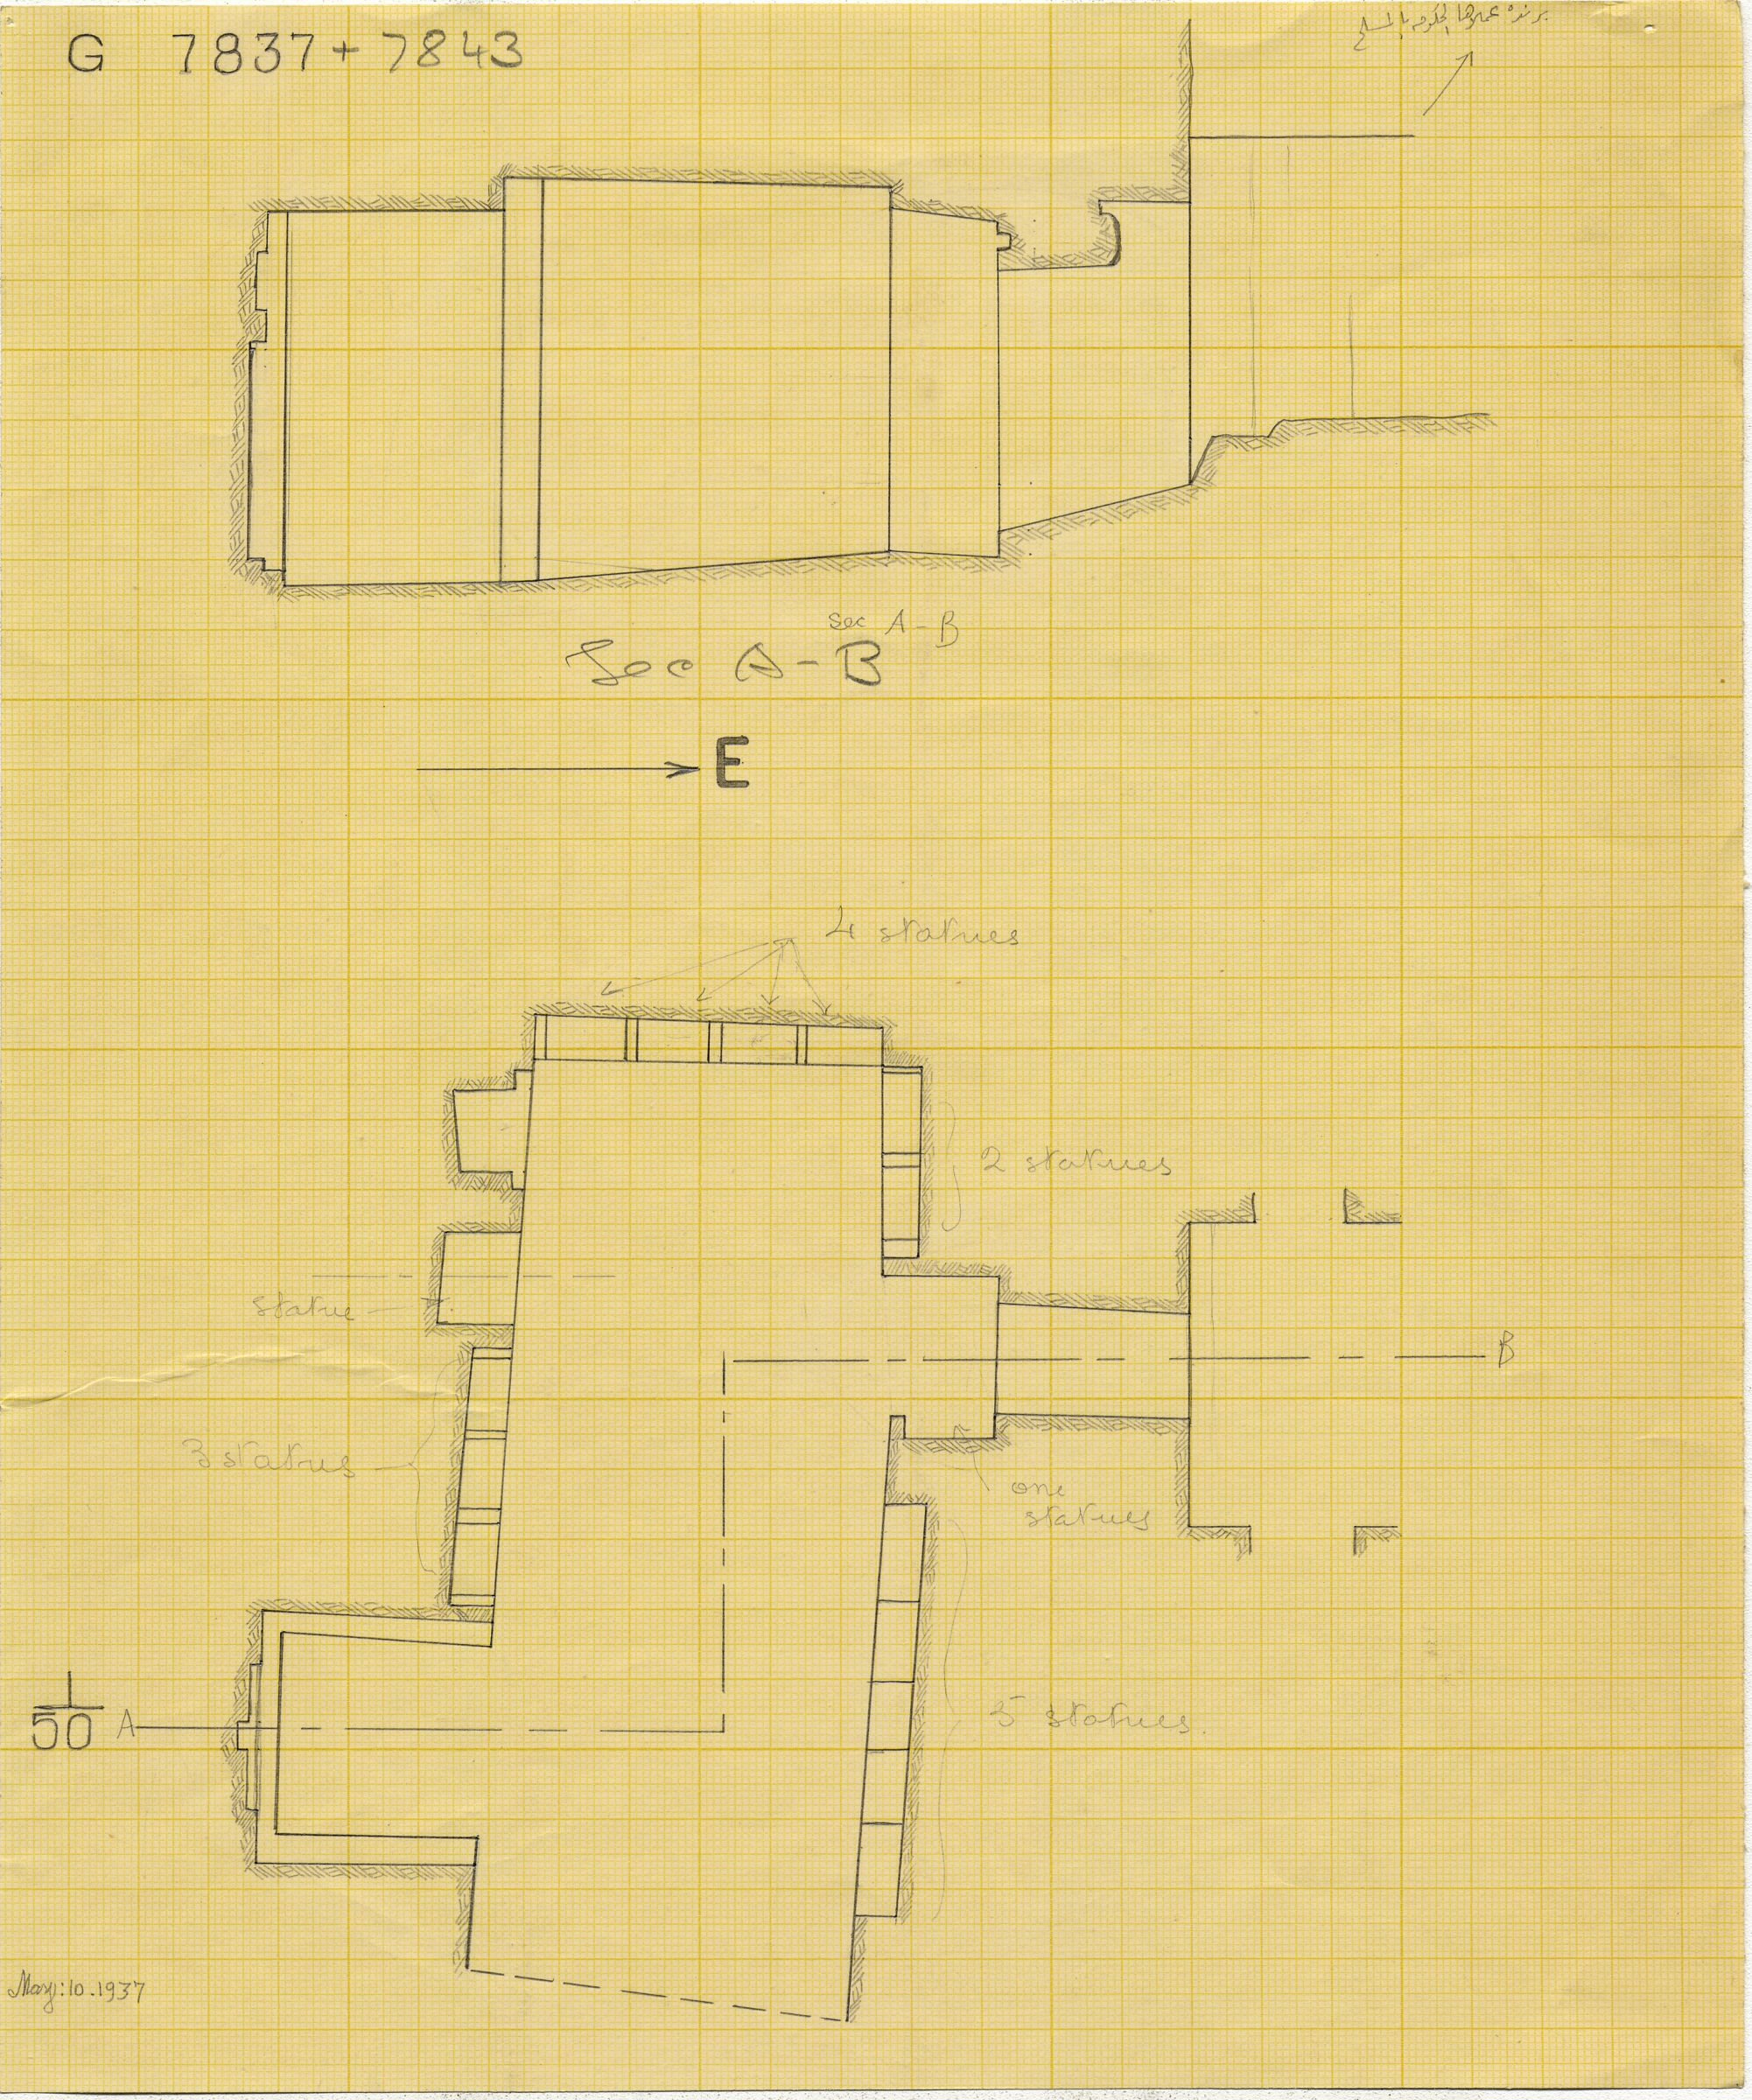 Maps and plans: G 7837+7843, Overall plan and section